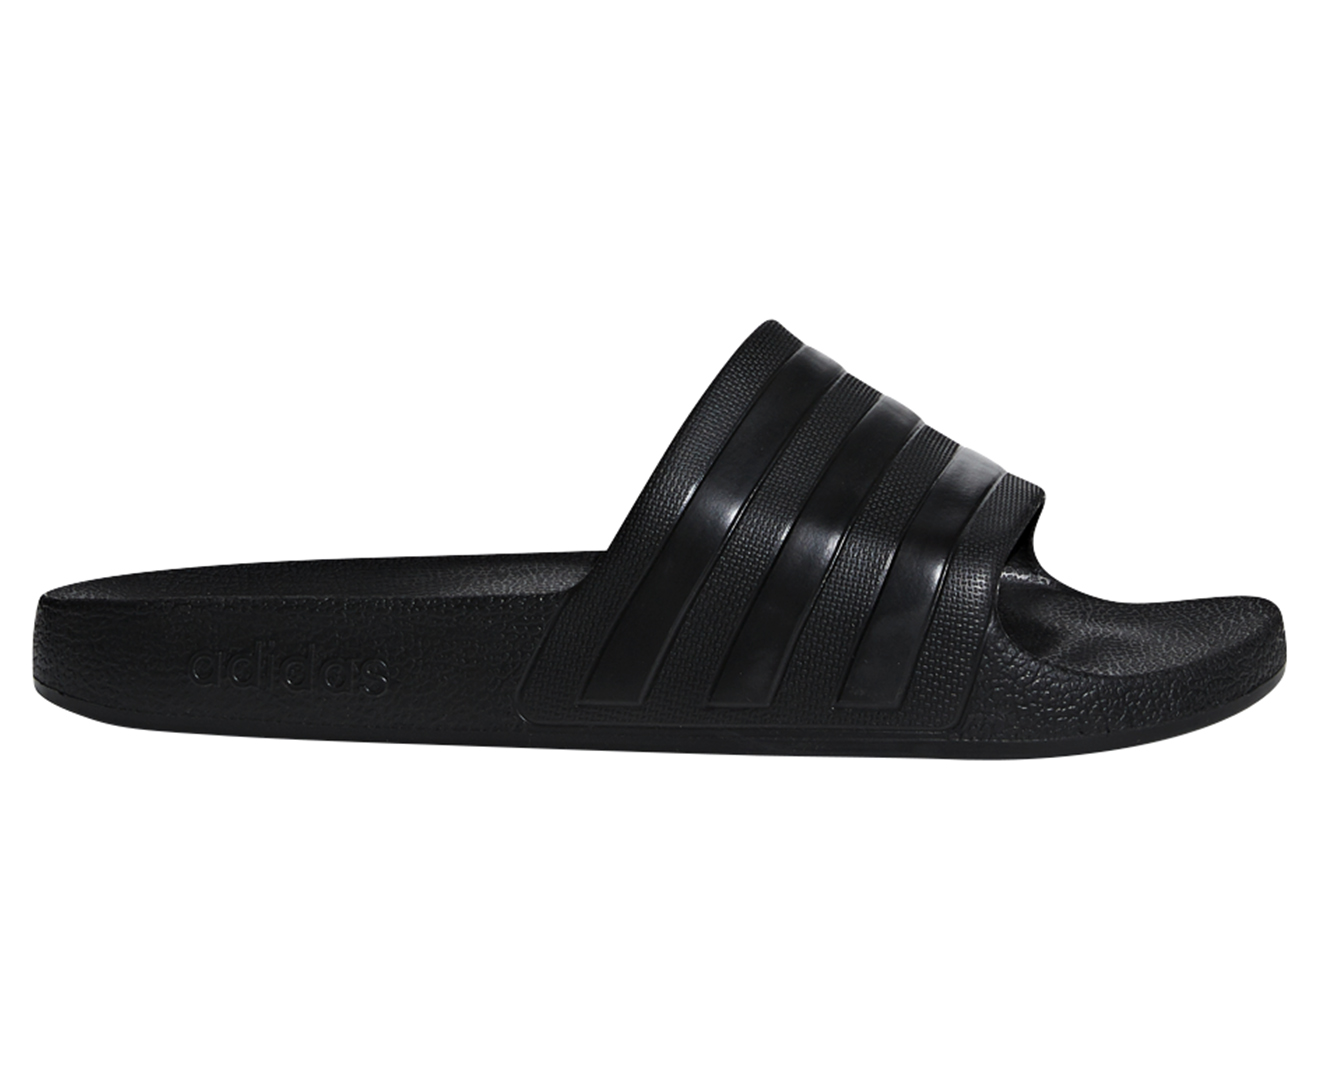 outlet store b24b2 4599c Adidas Adilette Aqua Slides - Core Black   Catch.com.au